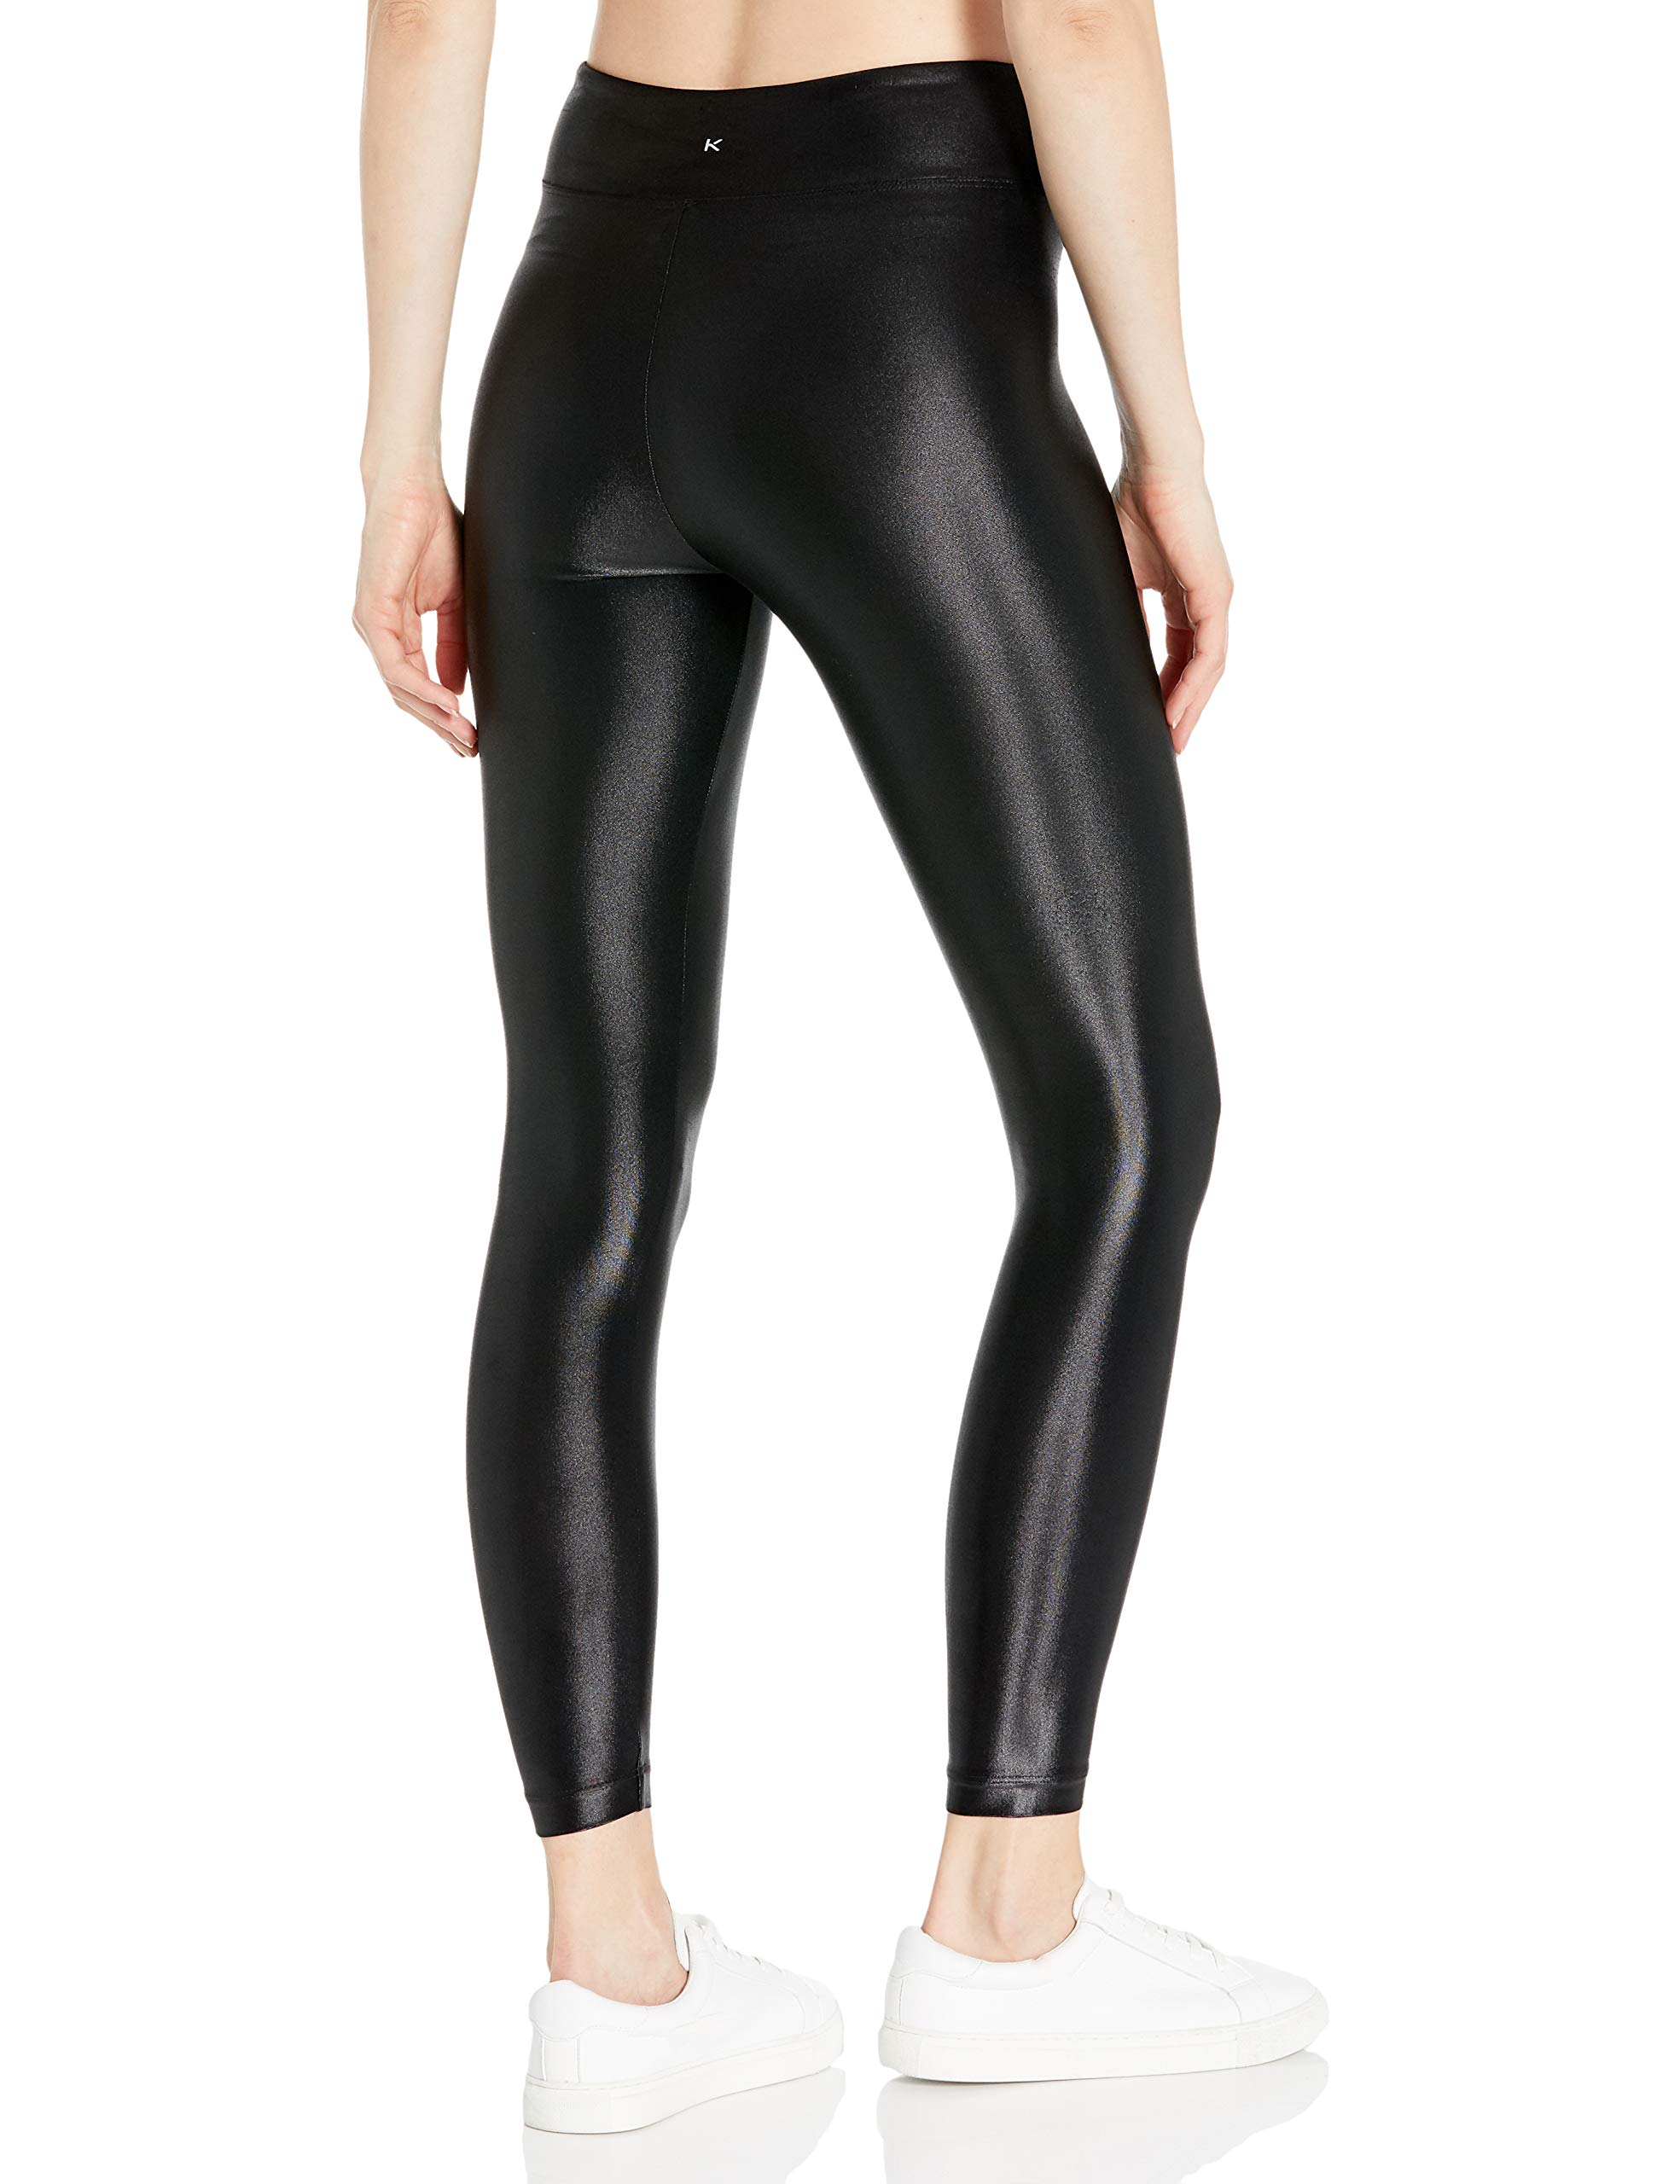 KORAL Women's Lustrous High Rise Legging